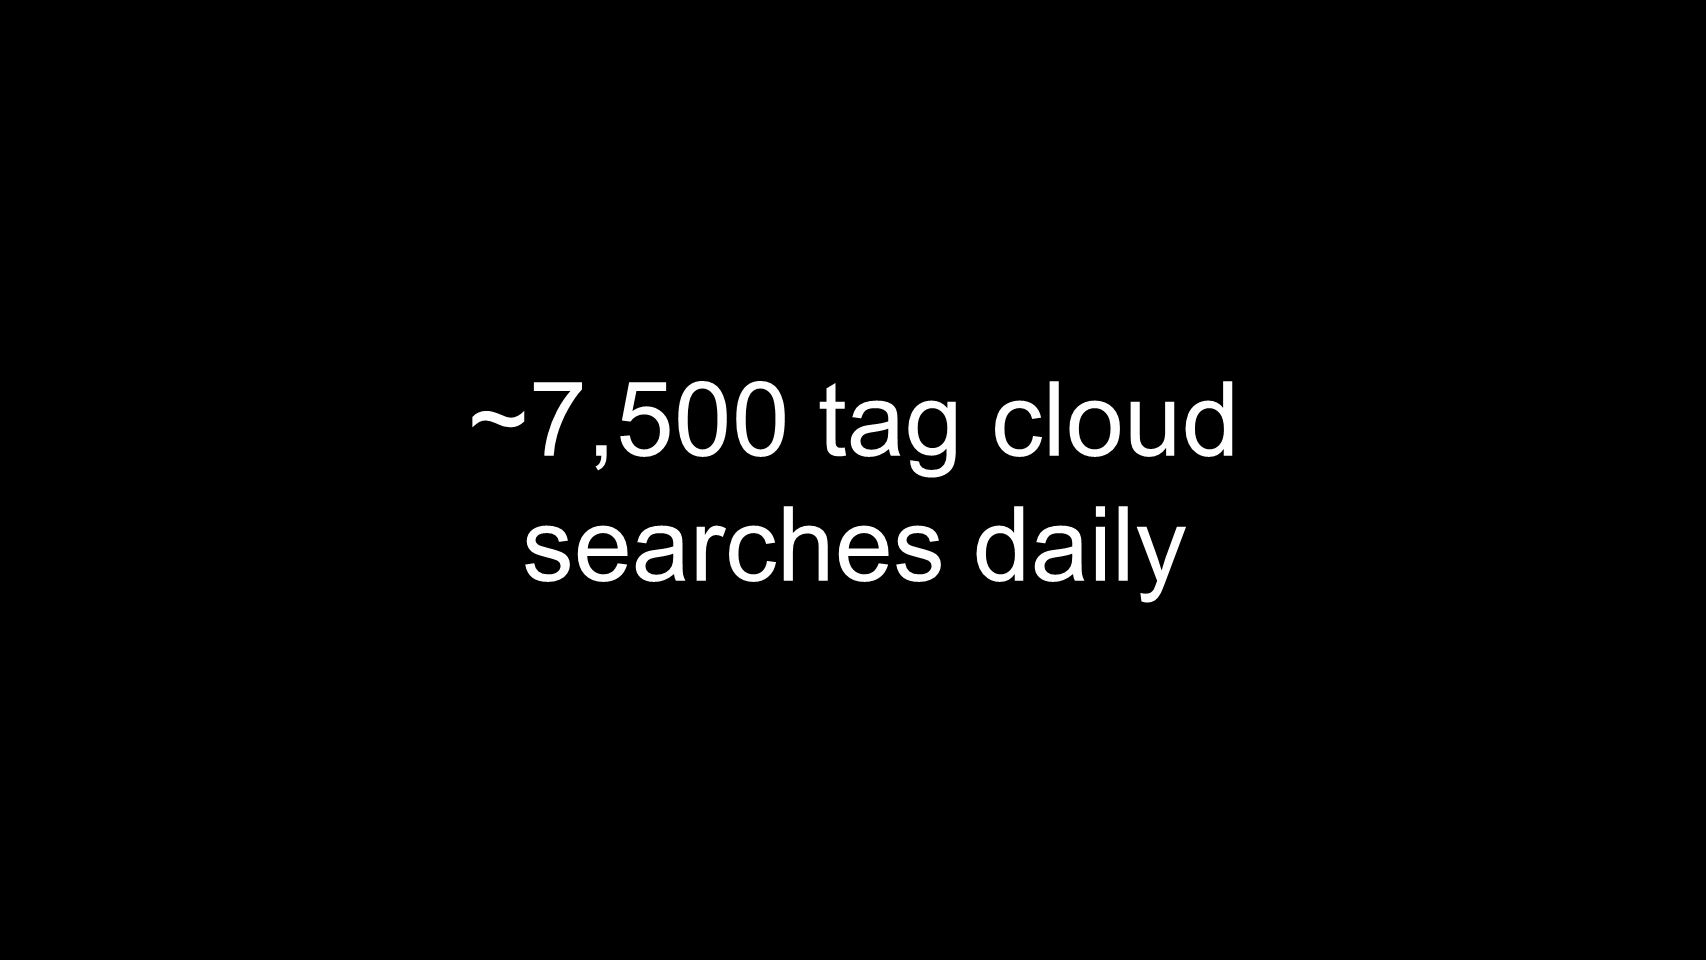 ~7,500 tag cloud searches daily